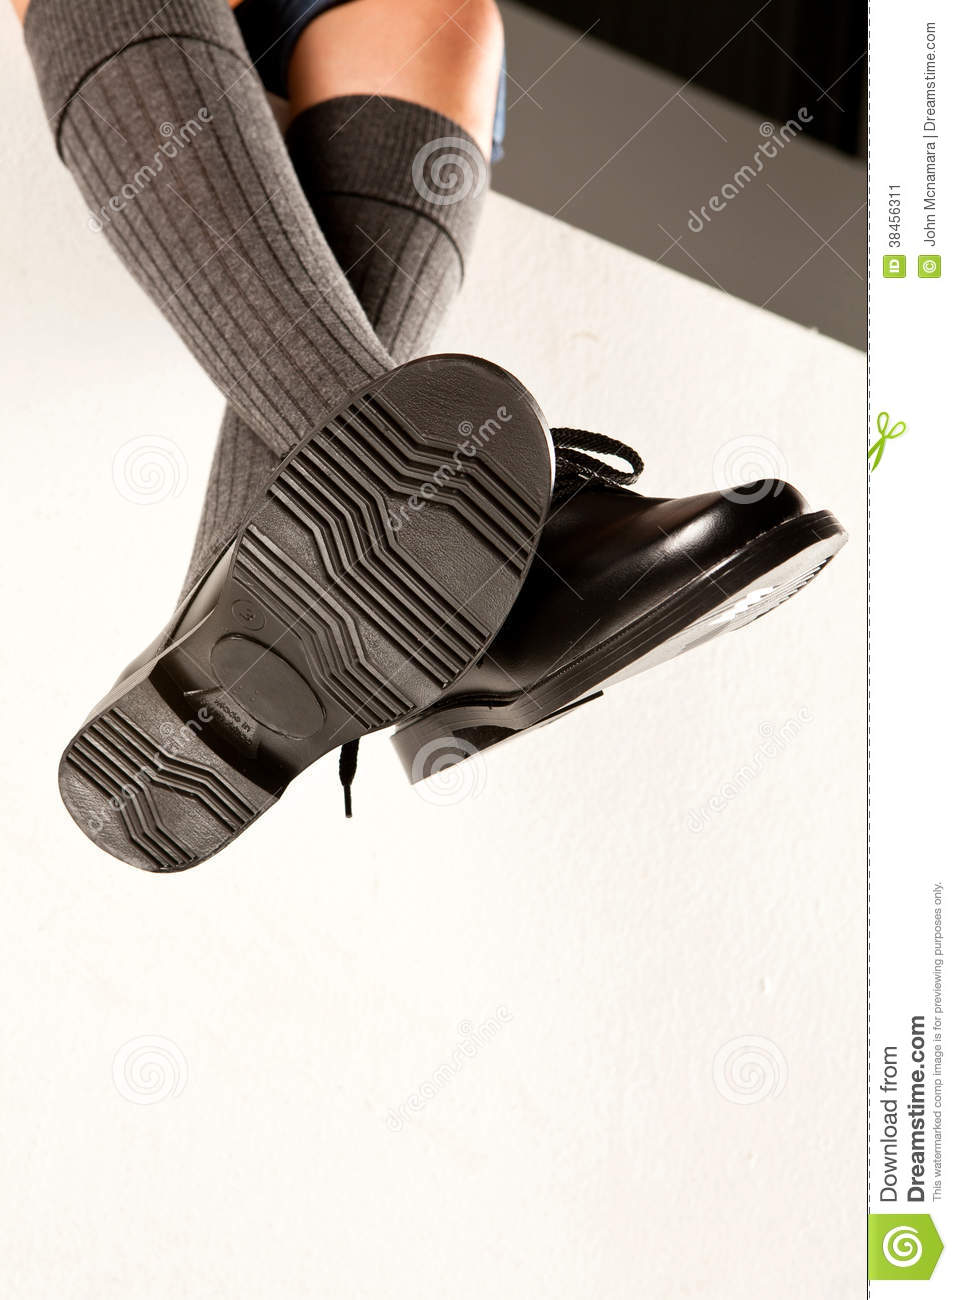 99eed18df1 A dangling set of kids legs with long grey socks and black school shoes on  a white background